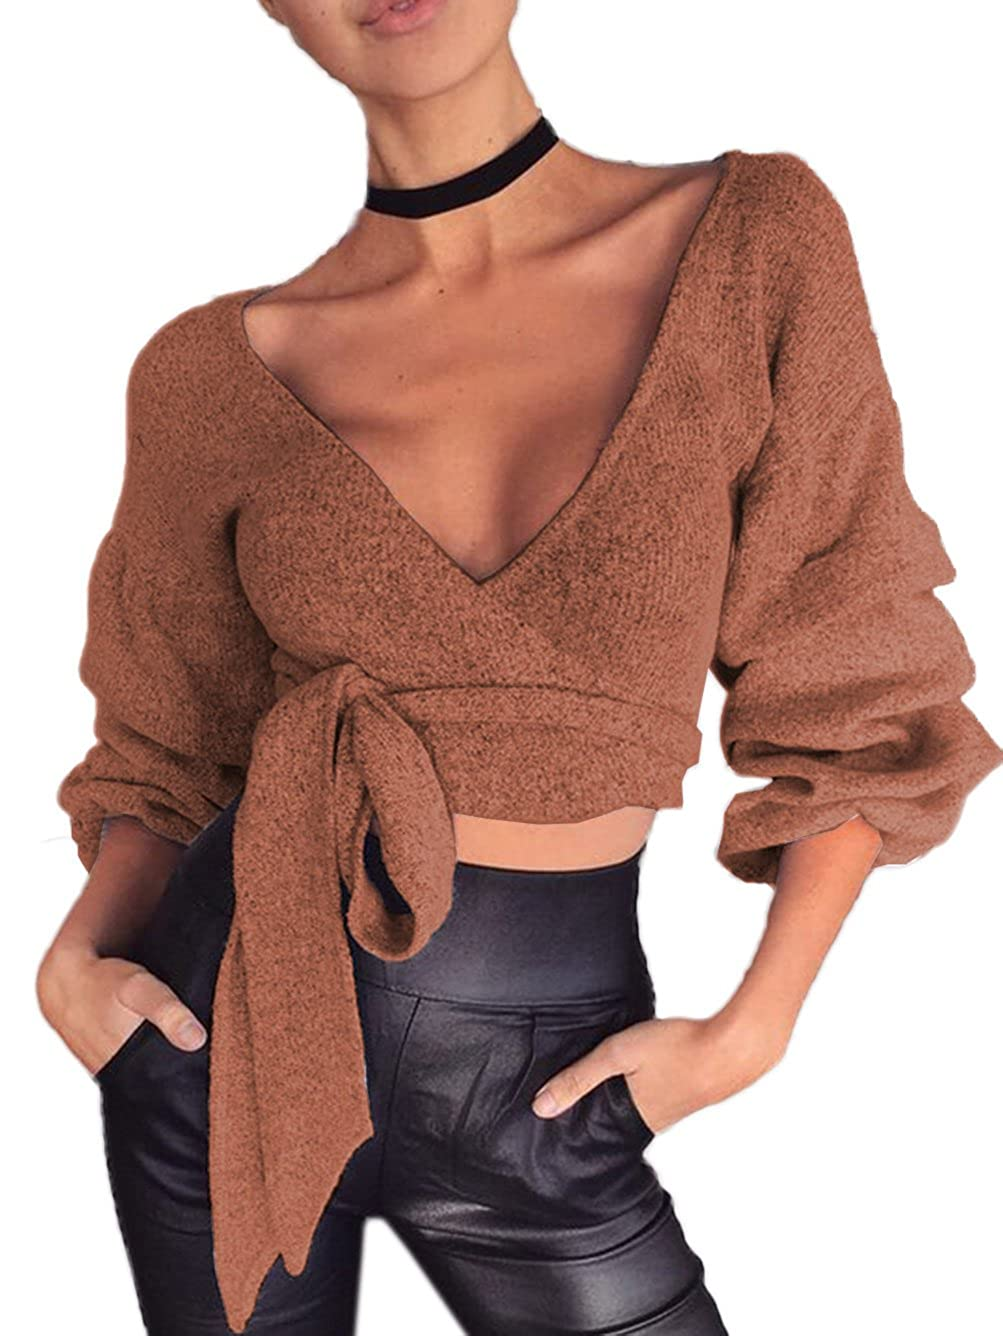 Women s Sexy Plunging Deep V Neck Bandage Tie Front Surplice Wrap Crop Top  Shirts Sweater at Amazon Women s Clothing store  9e7061db4